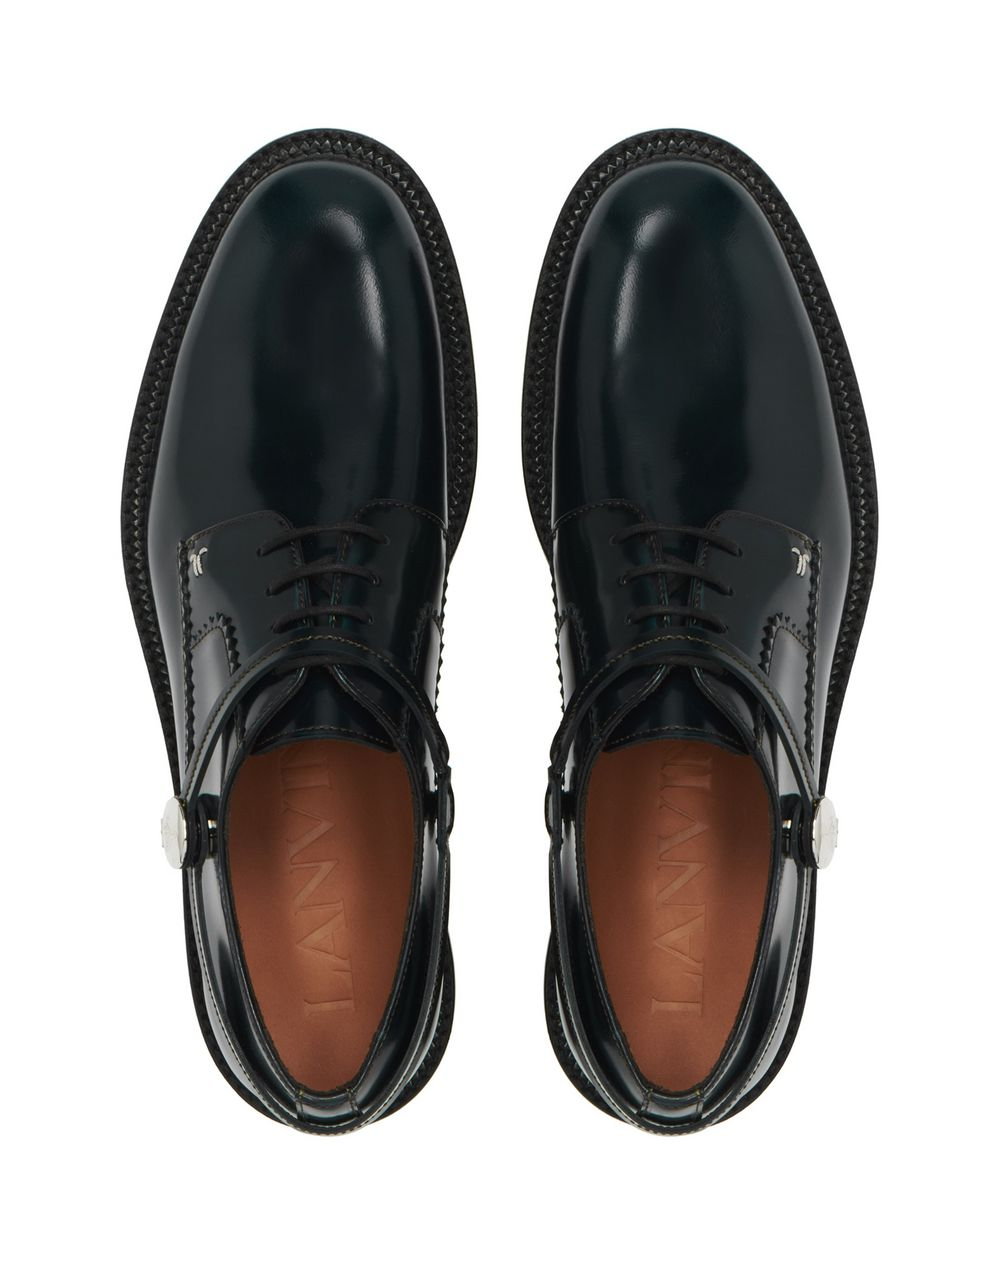 DERBY SHOE IN SHINY CALFSKIN   - Lanvin